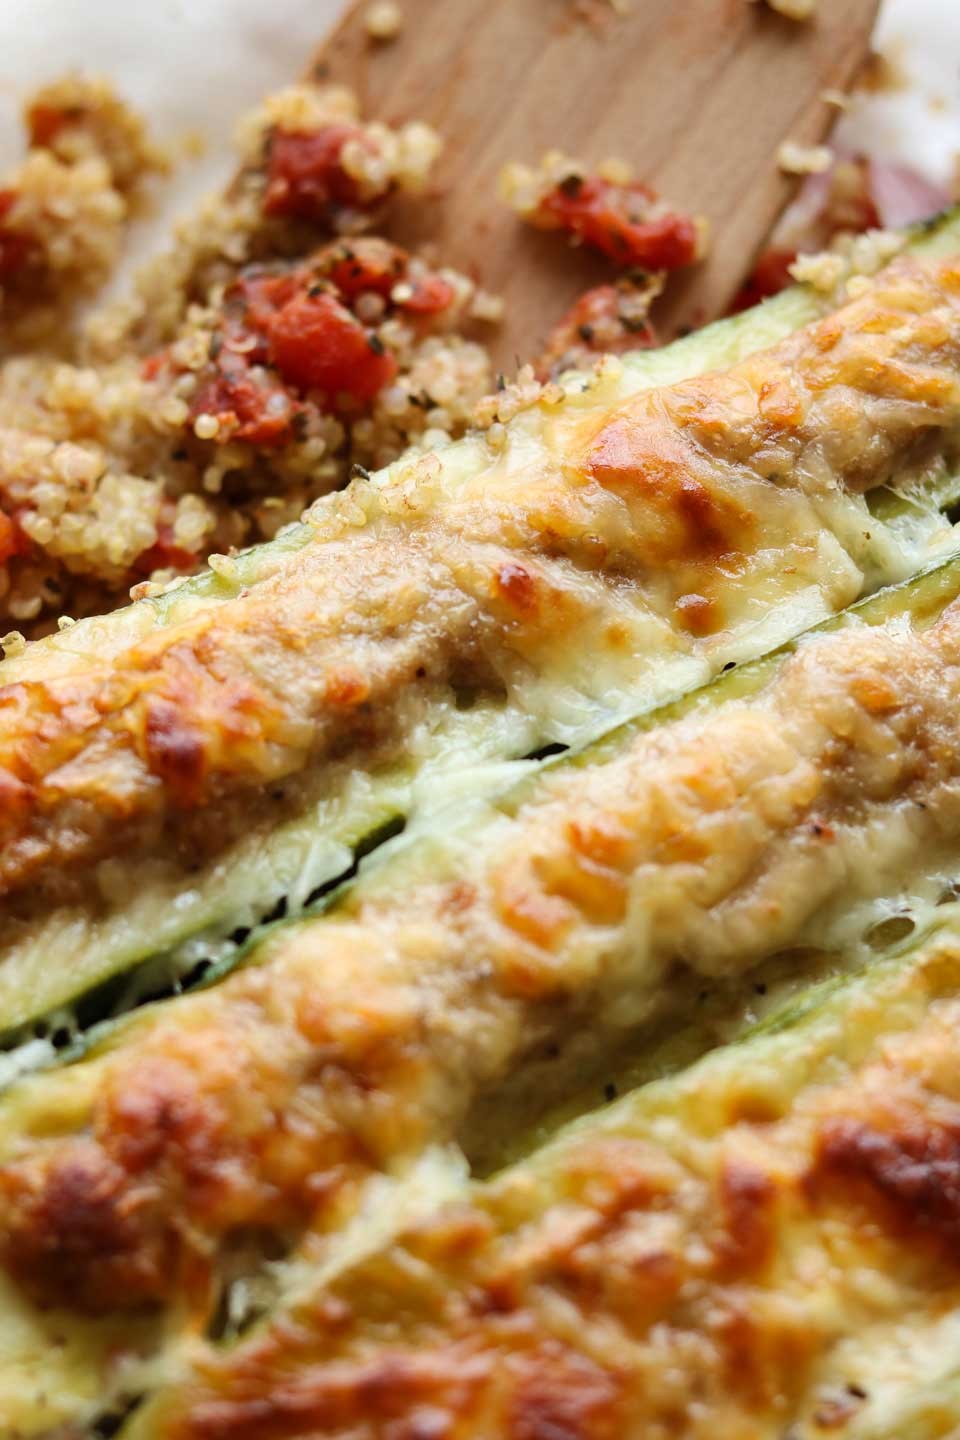 Bubbly, golden brown Italian cheeses are the perfect finish to easy stuffed zucchini filled with savory Italian sausage, all atop a quick quinoa mixture that you stir together right in the pan. An easy casserole recipe that's terrific for busy weeknights!